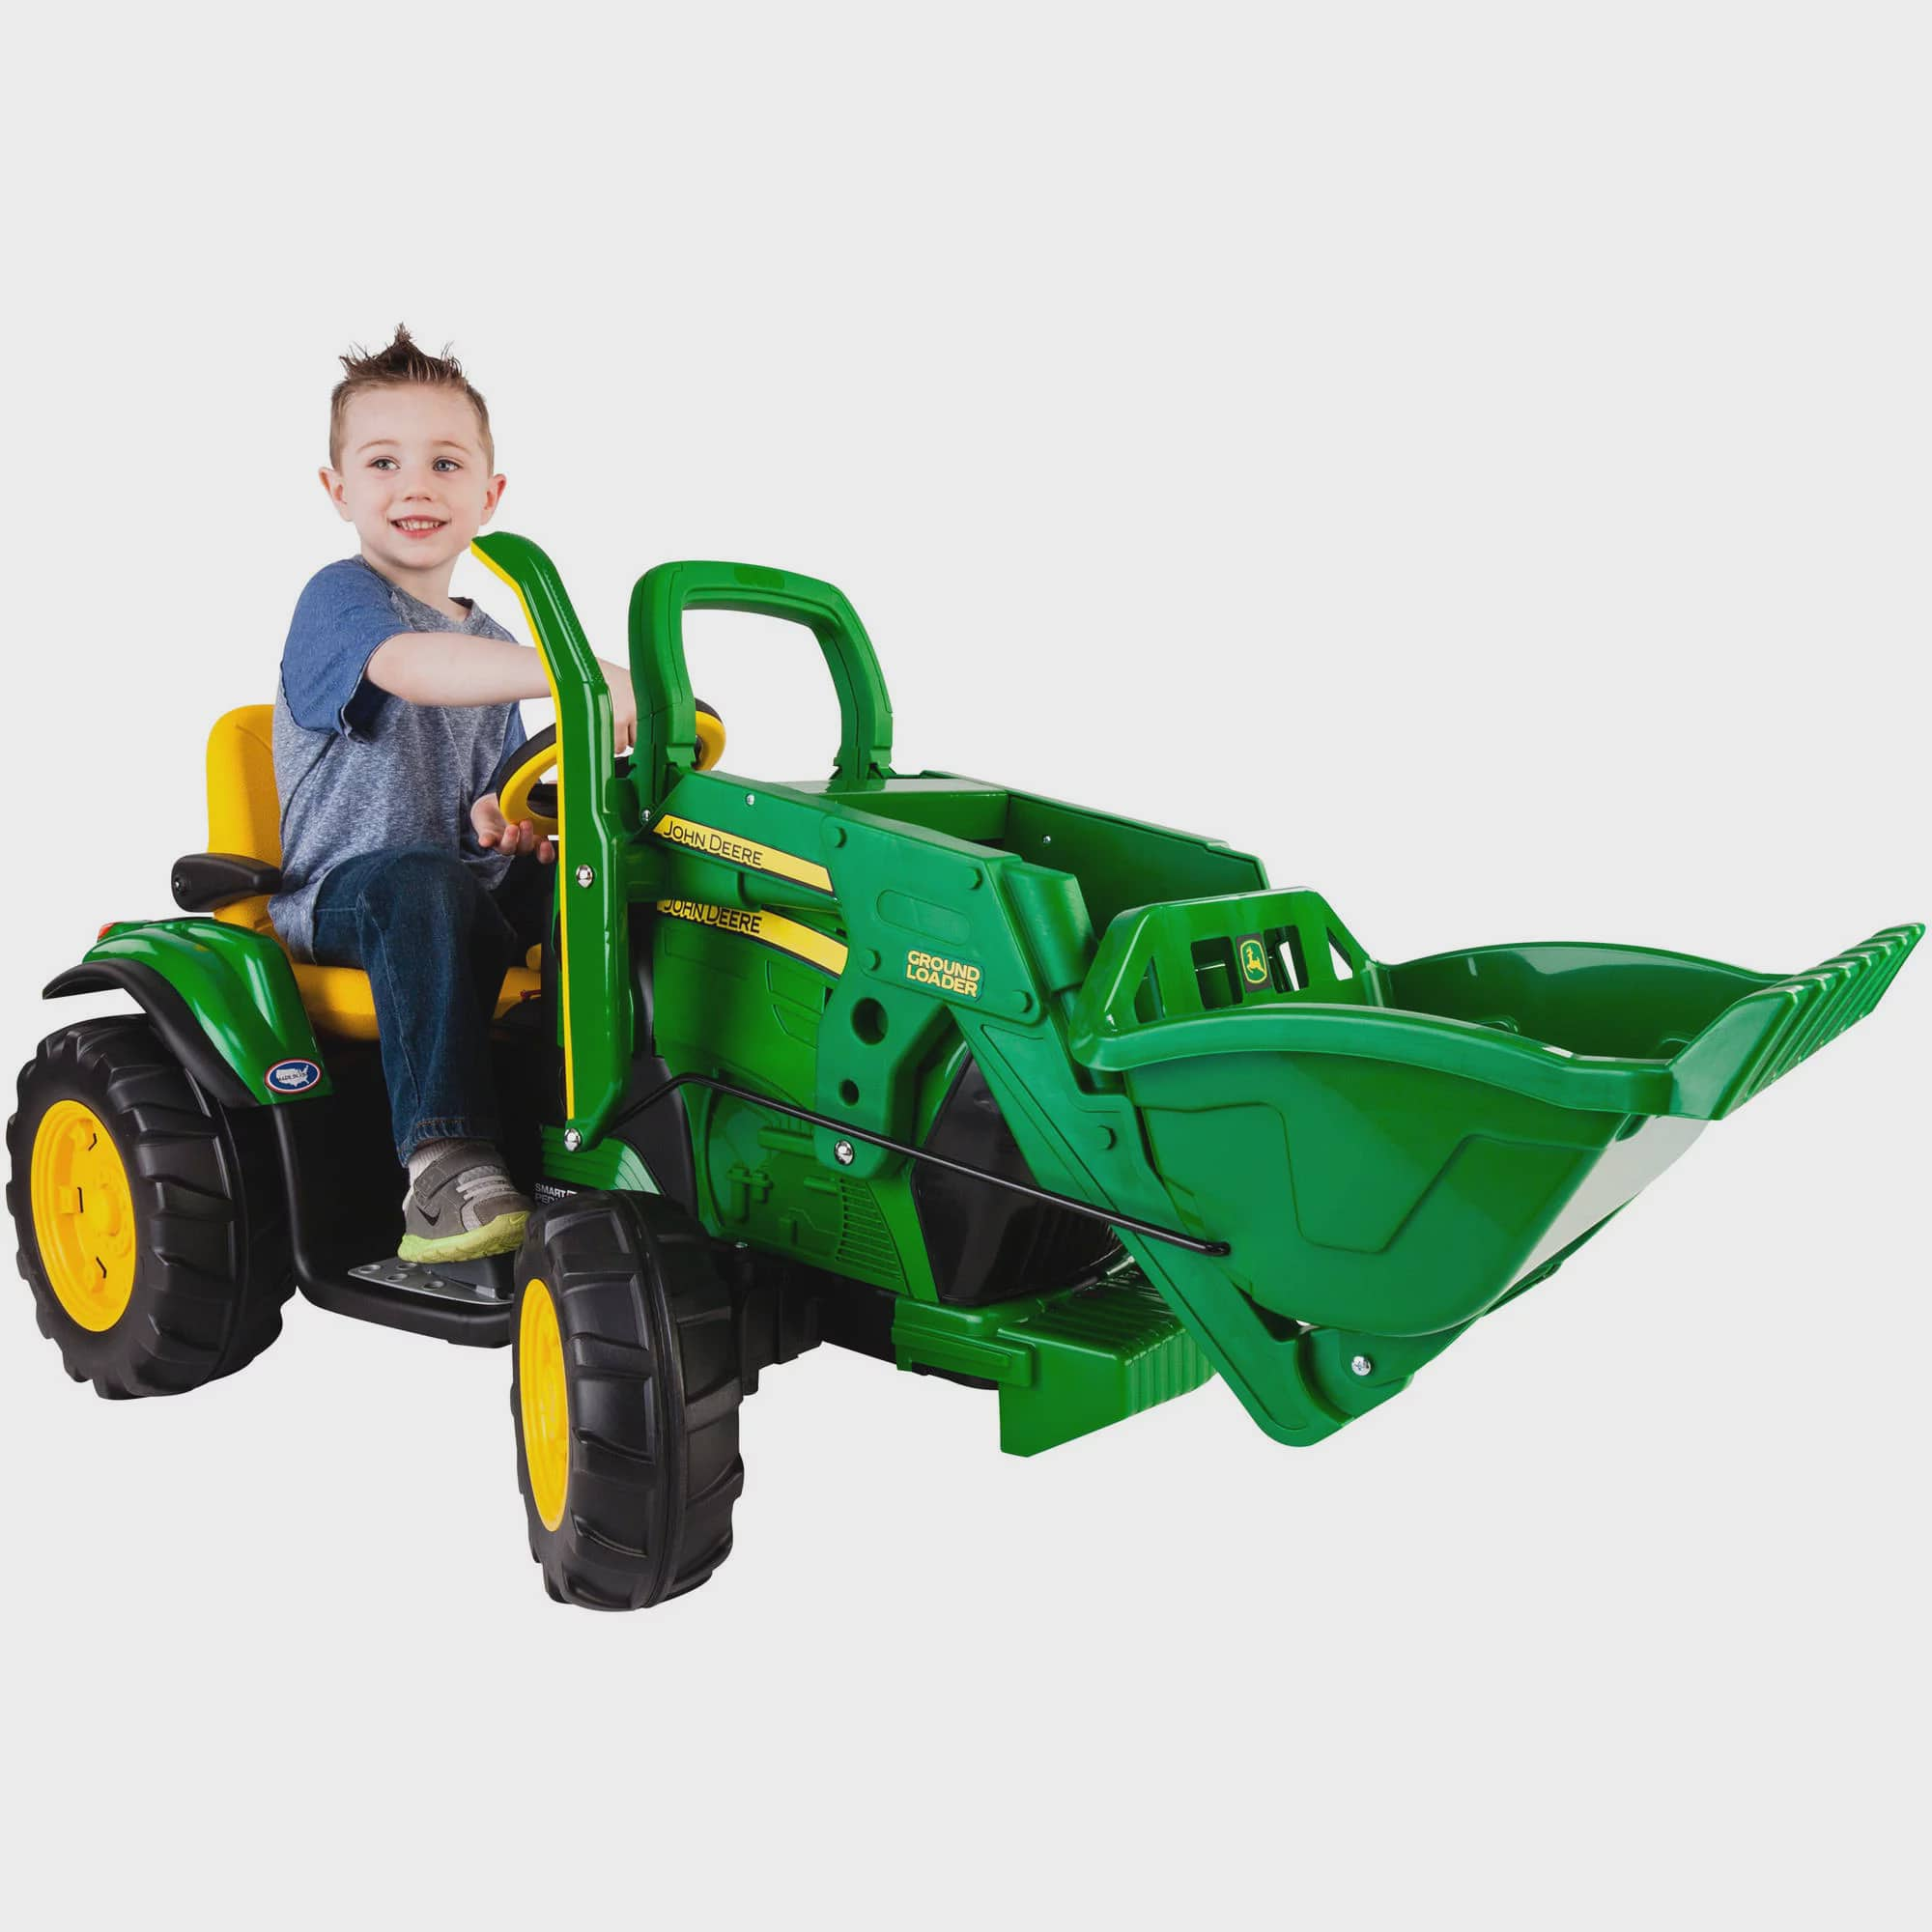 Peg Perego John Deere Ground Loader 12-Volt Battery-Powered Ride-On by Peg Perego USA Inc